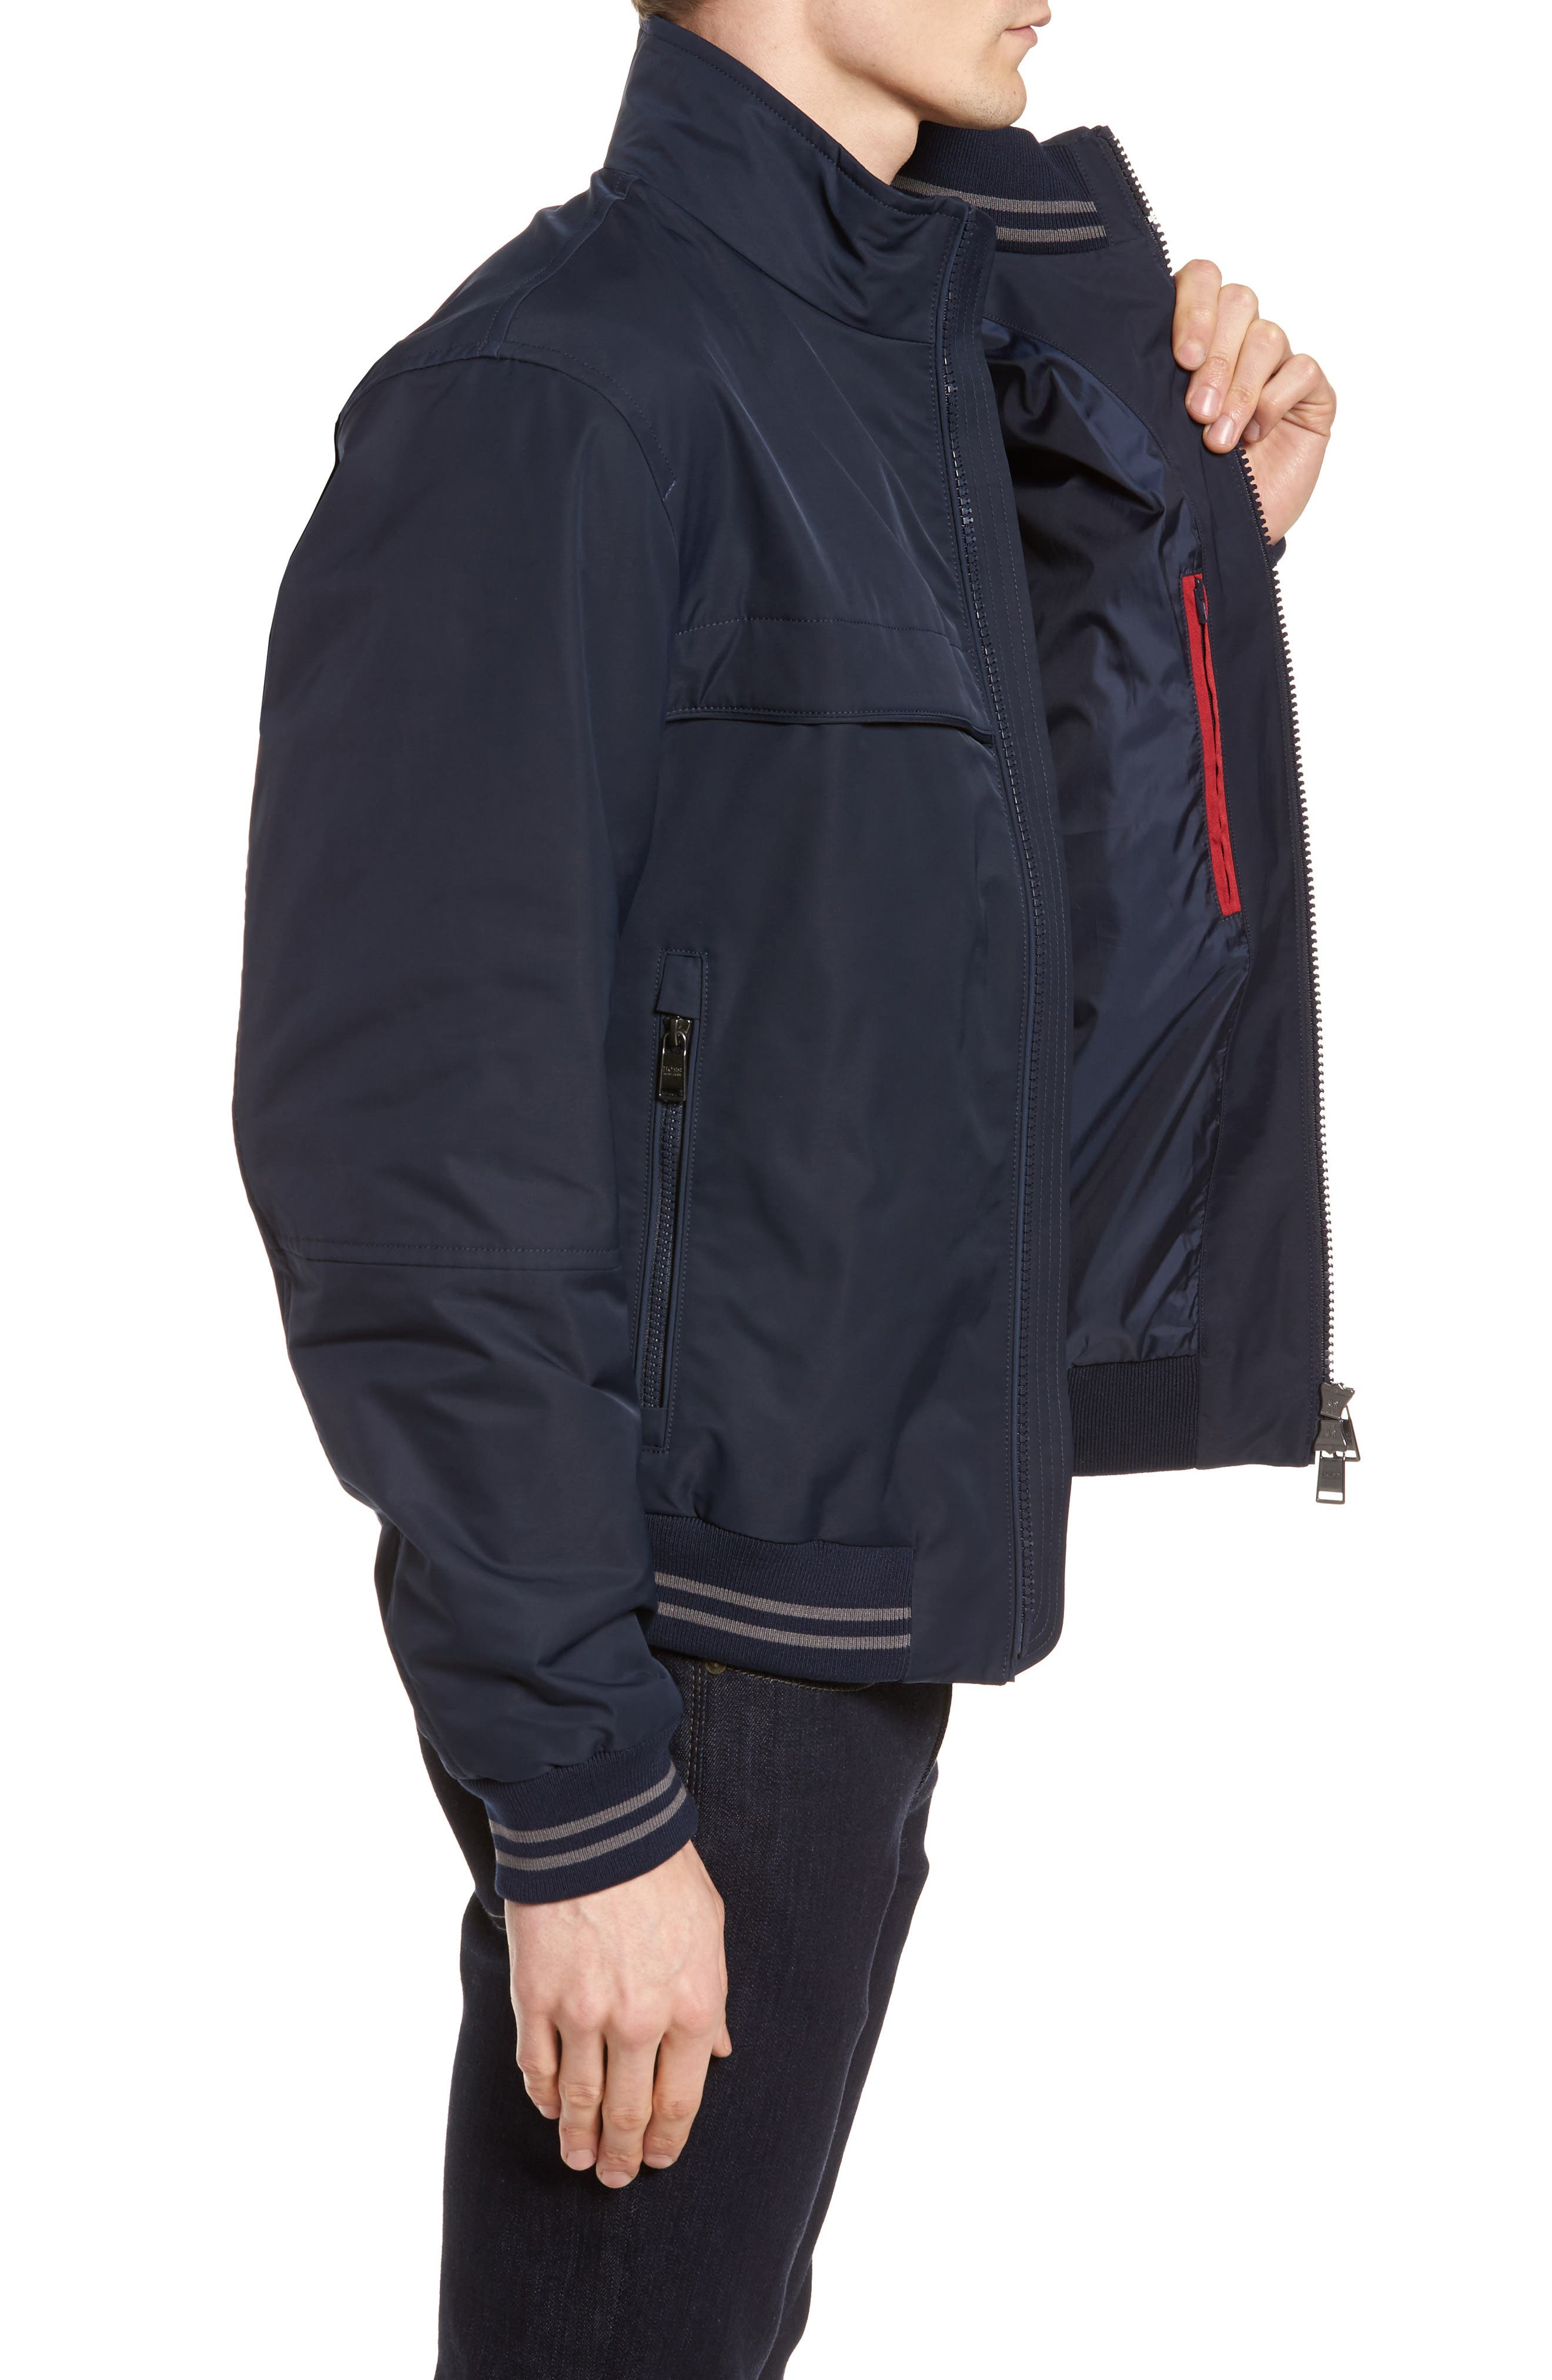 Cossito Regular Fit Bomber Jacket,                             Alternate thumbnail 3, color,                             410